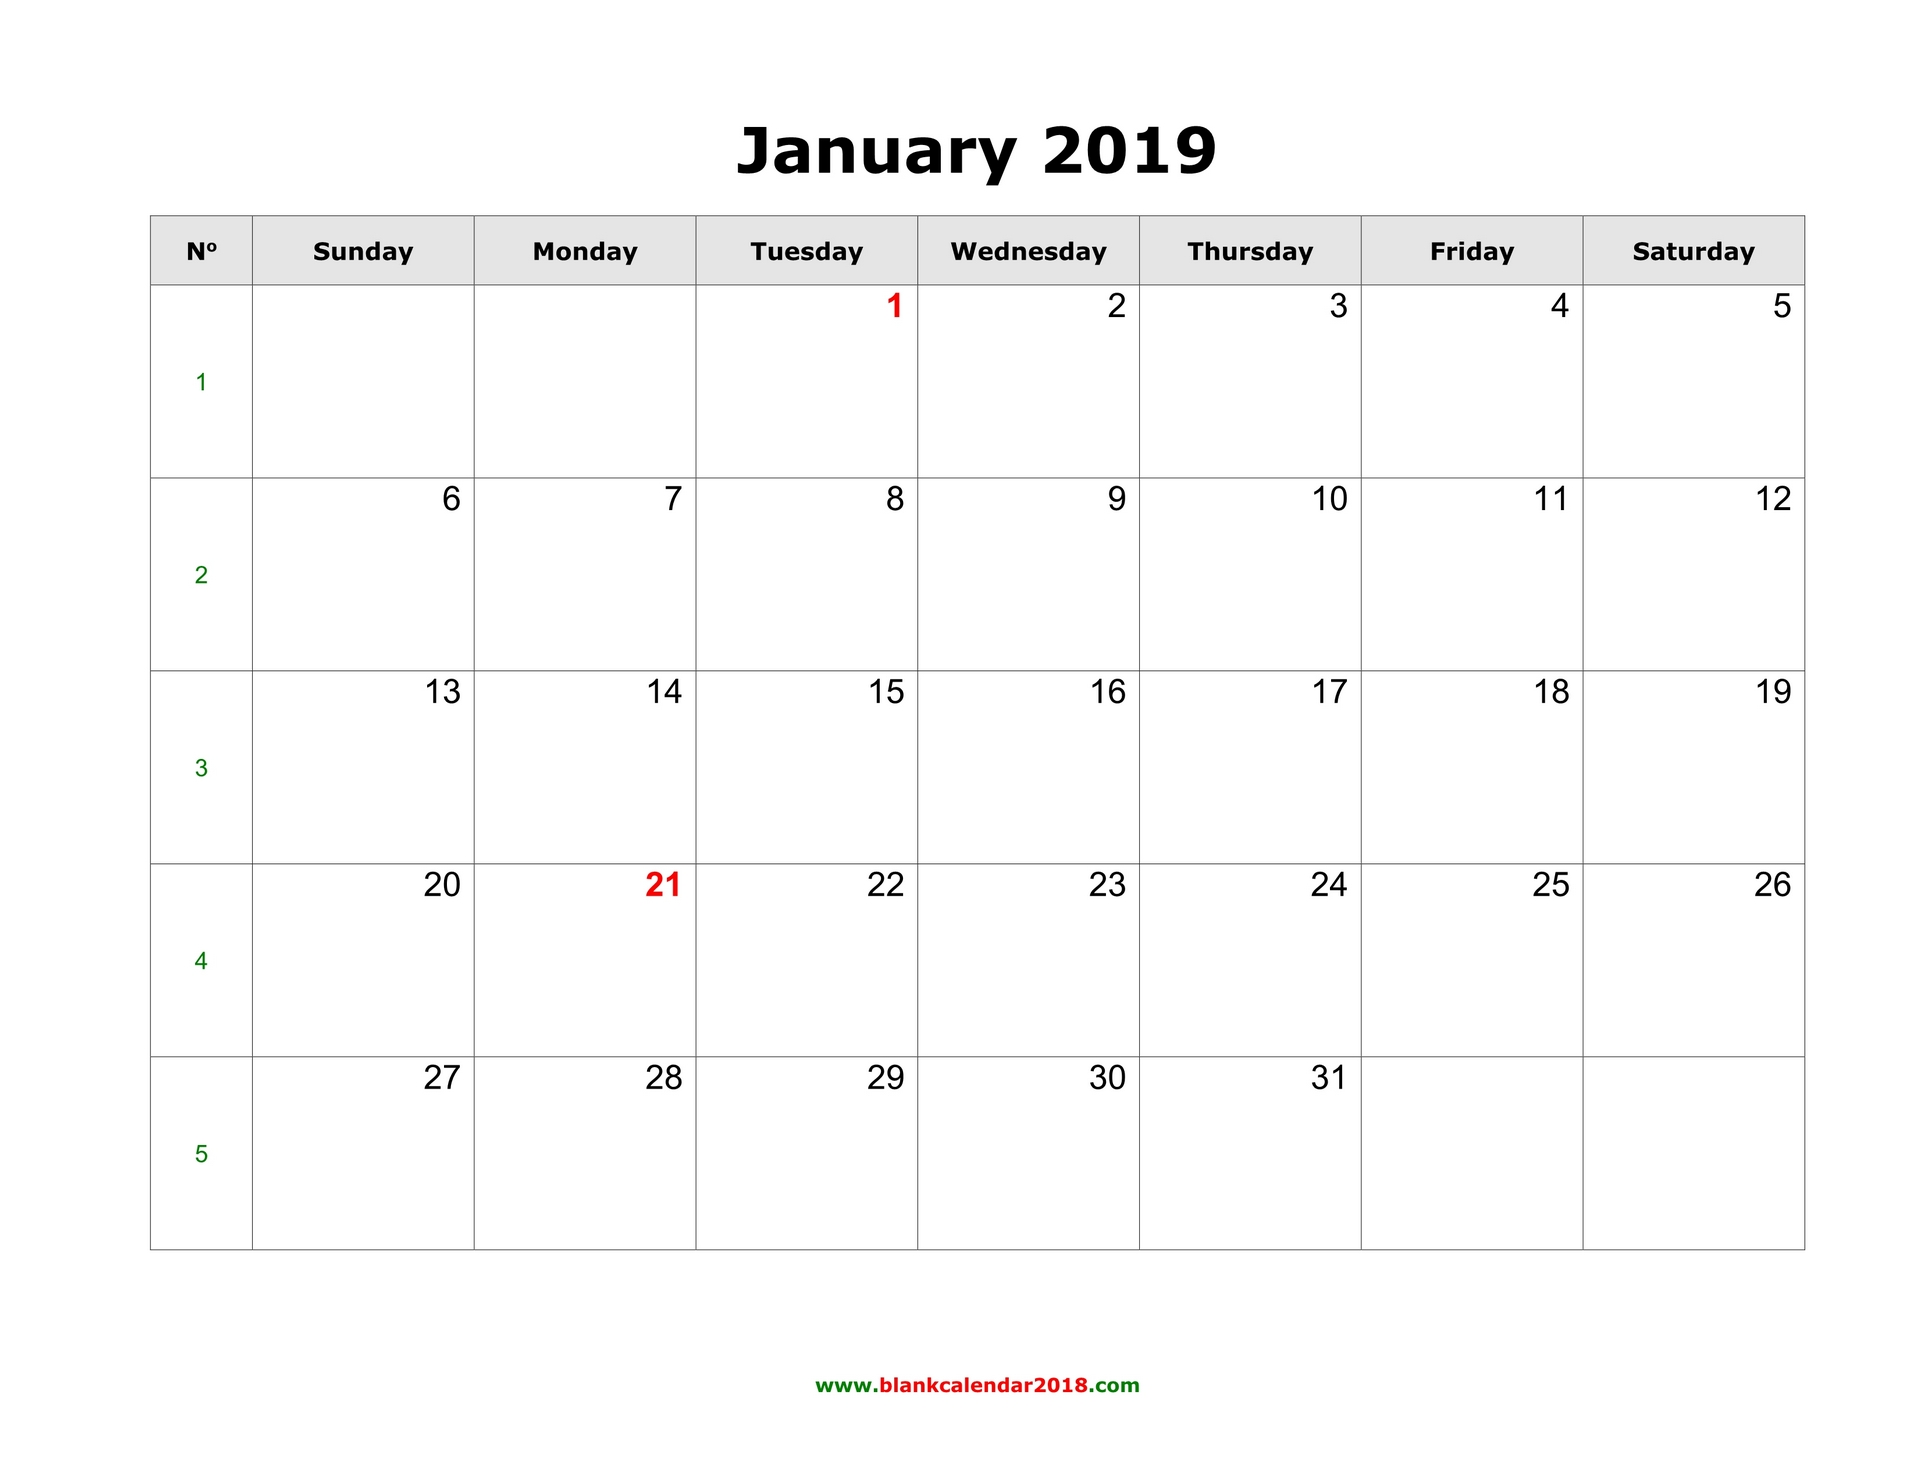 photo about January Calendar Printable named Blank Calendar for January 2019